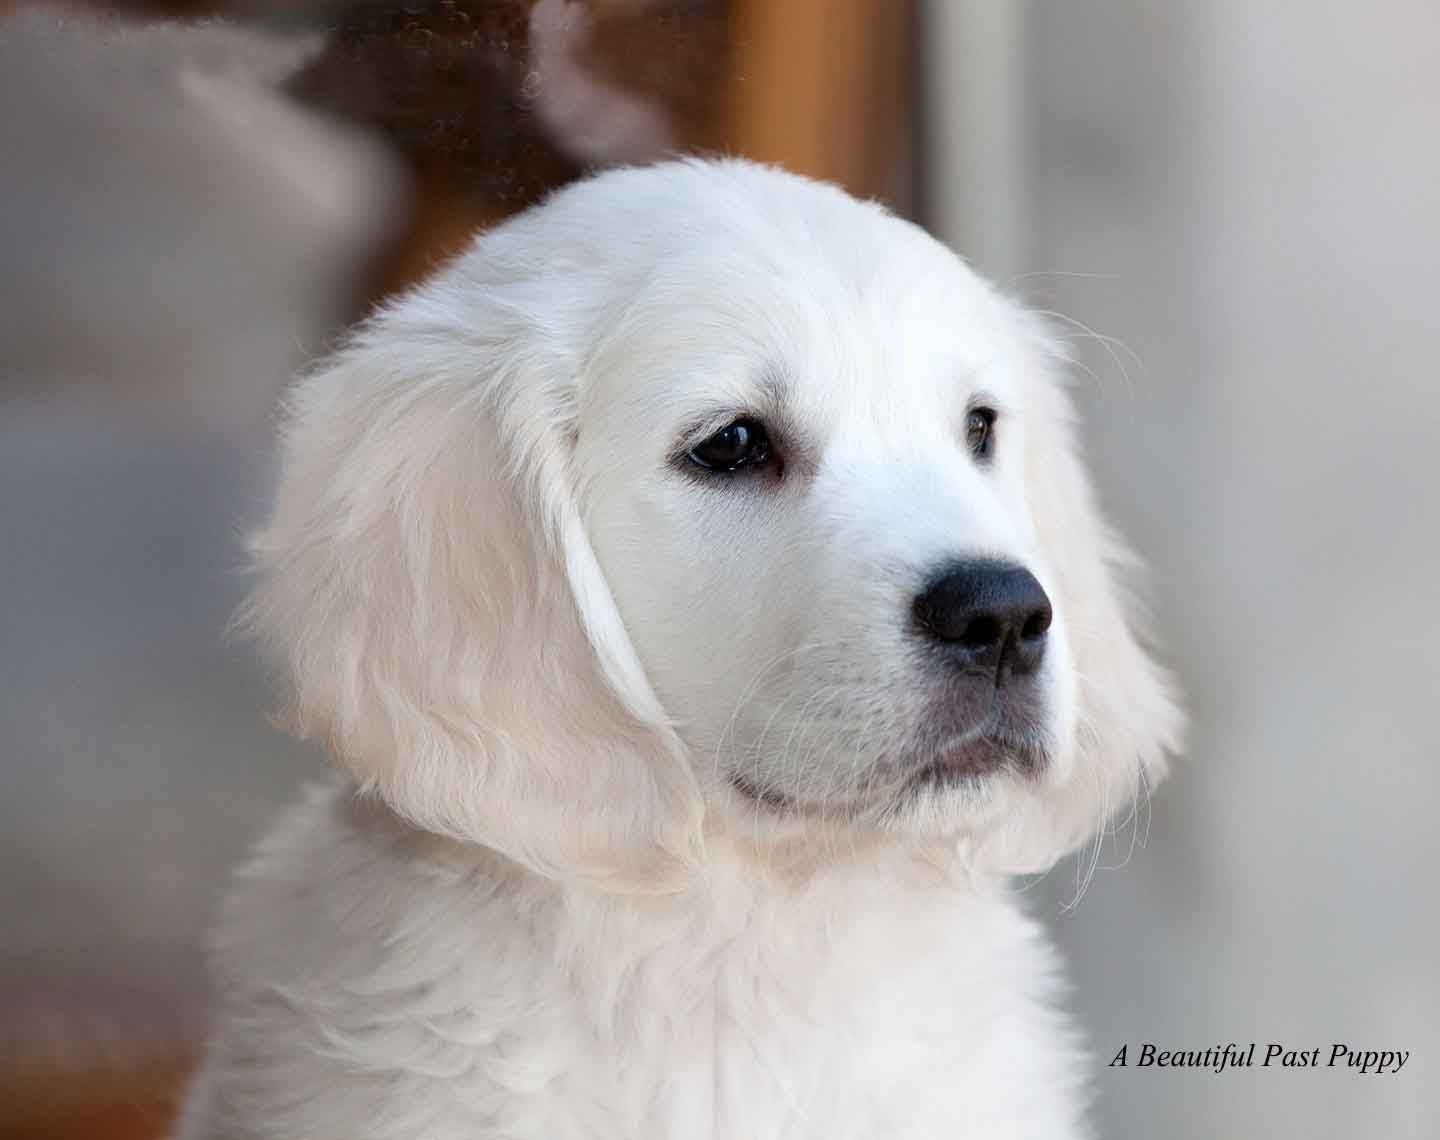 Maxpuppy Fluffy Dogs Golden Retriever White Golden Retriever Puppy English Golden Retrievers